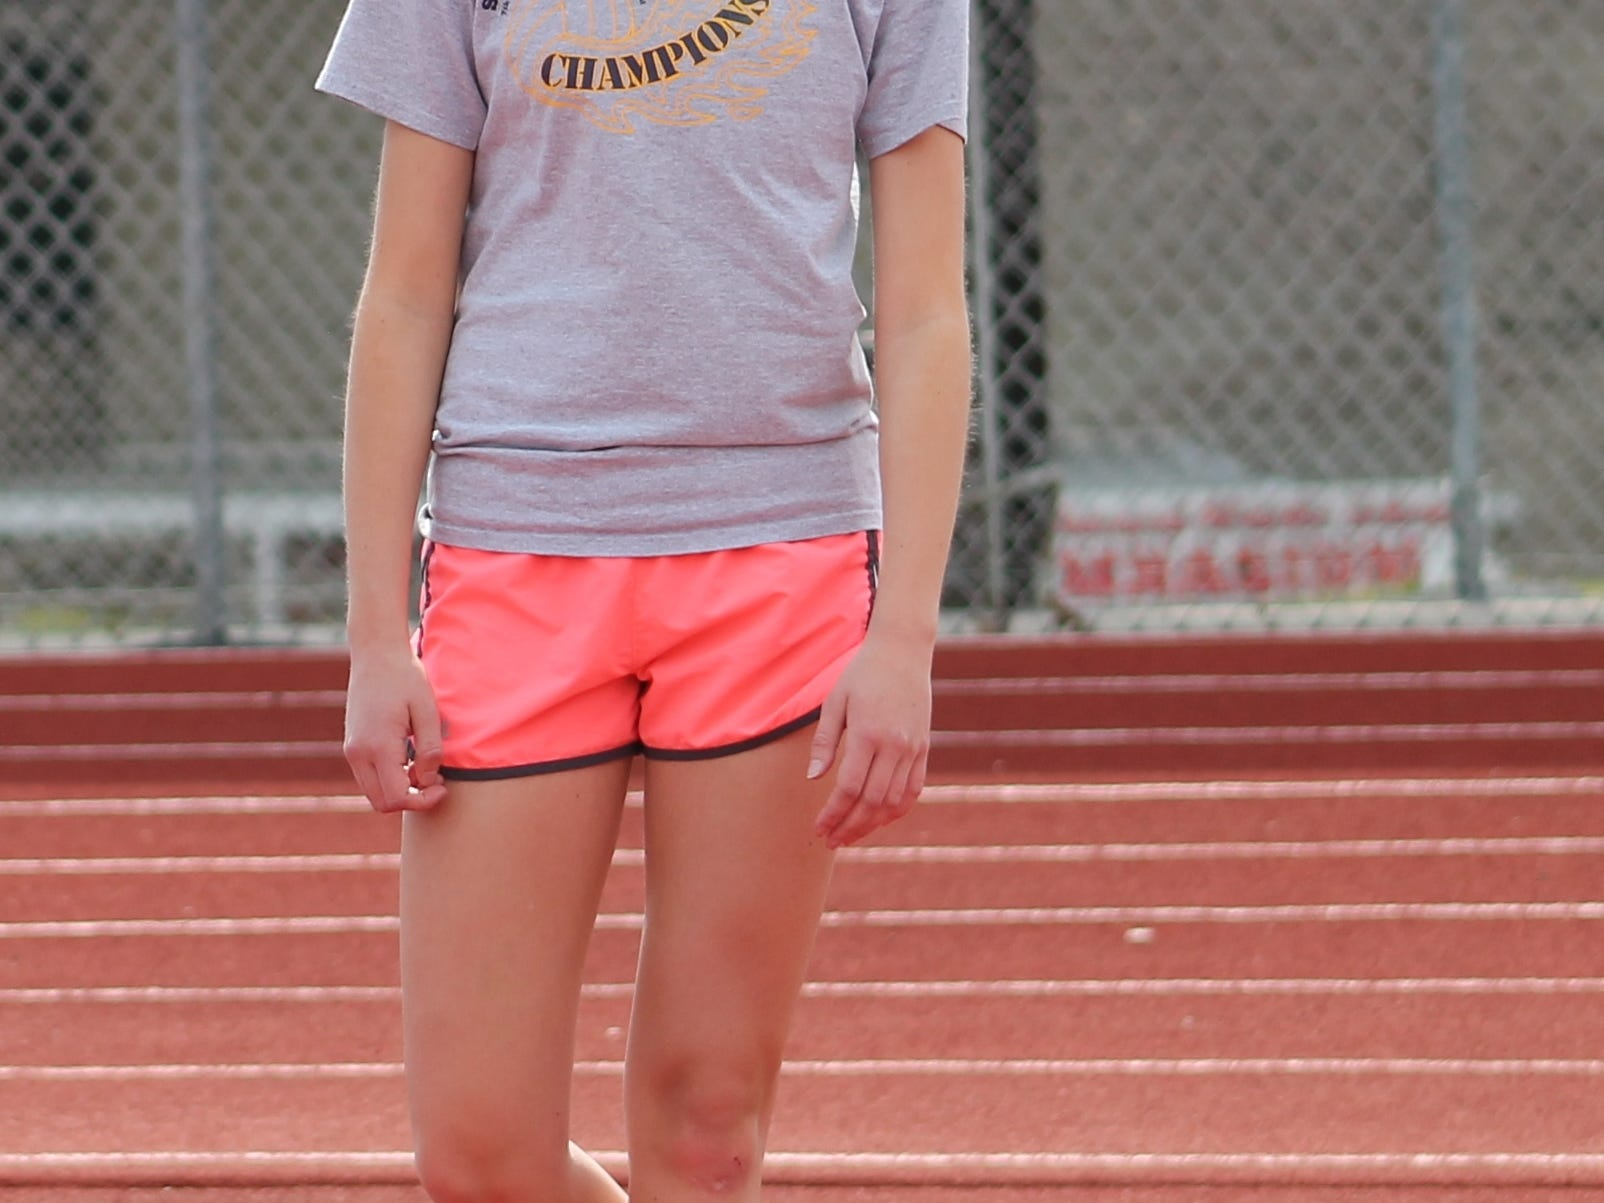 New Richmond freshman Aubree Story will high jump for the Lady Lions this spring.